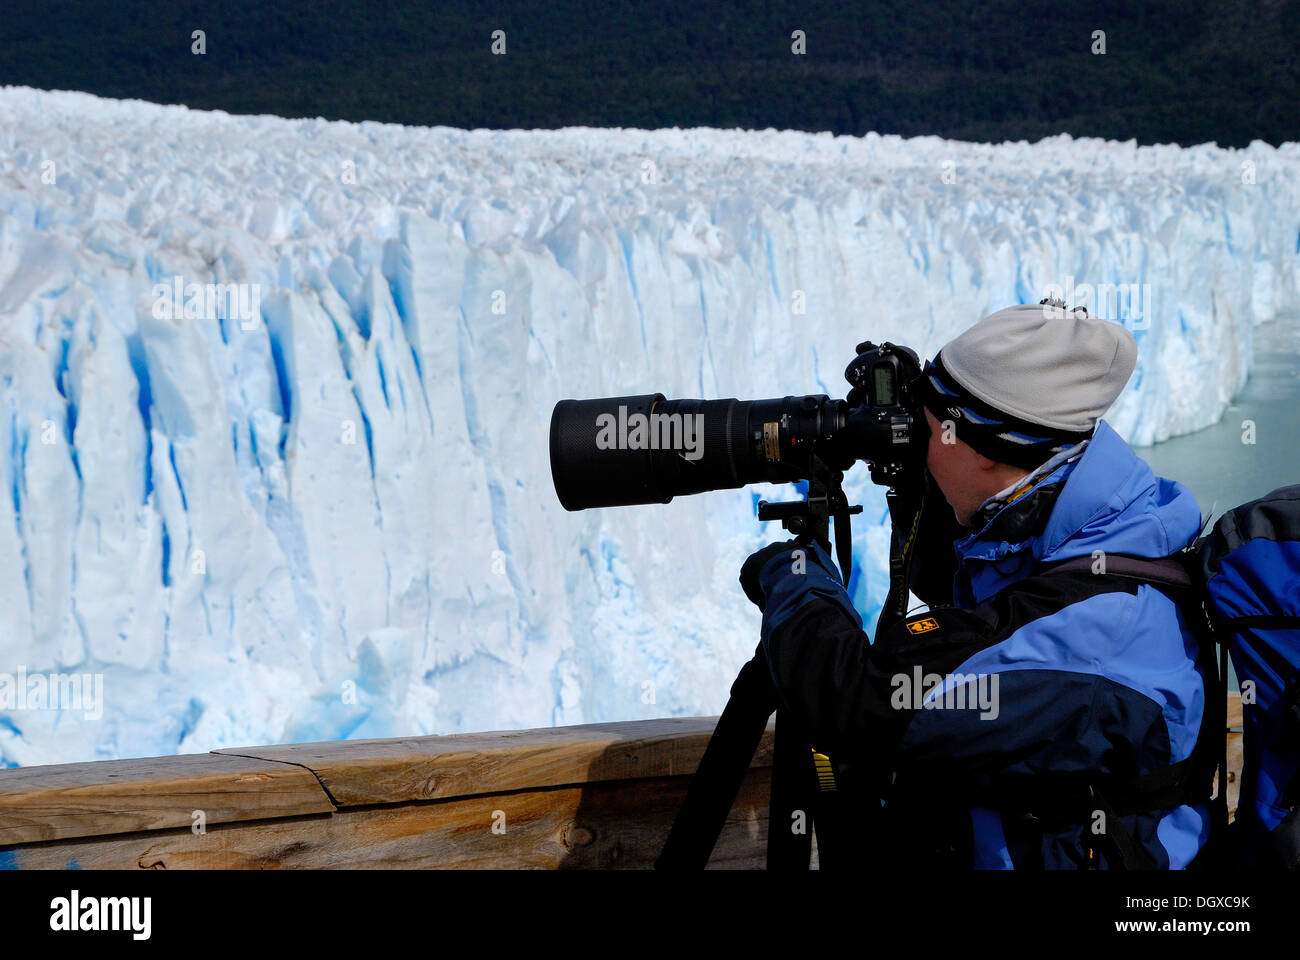 Photographer with a telephoto lens, taking picture of the Perito Moreno Glacier, Patagonia, Argentina, South America - Stock Image